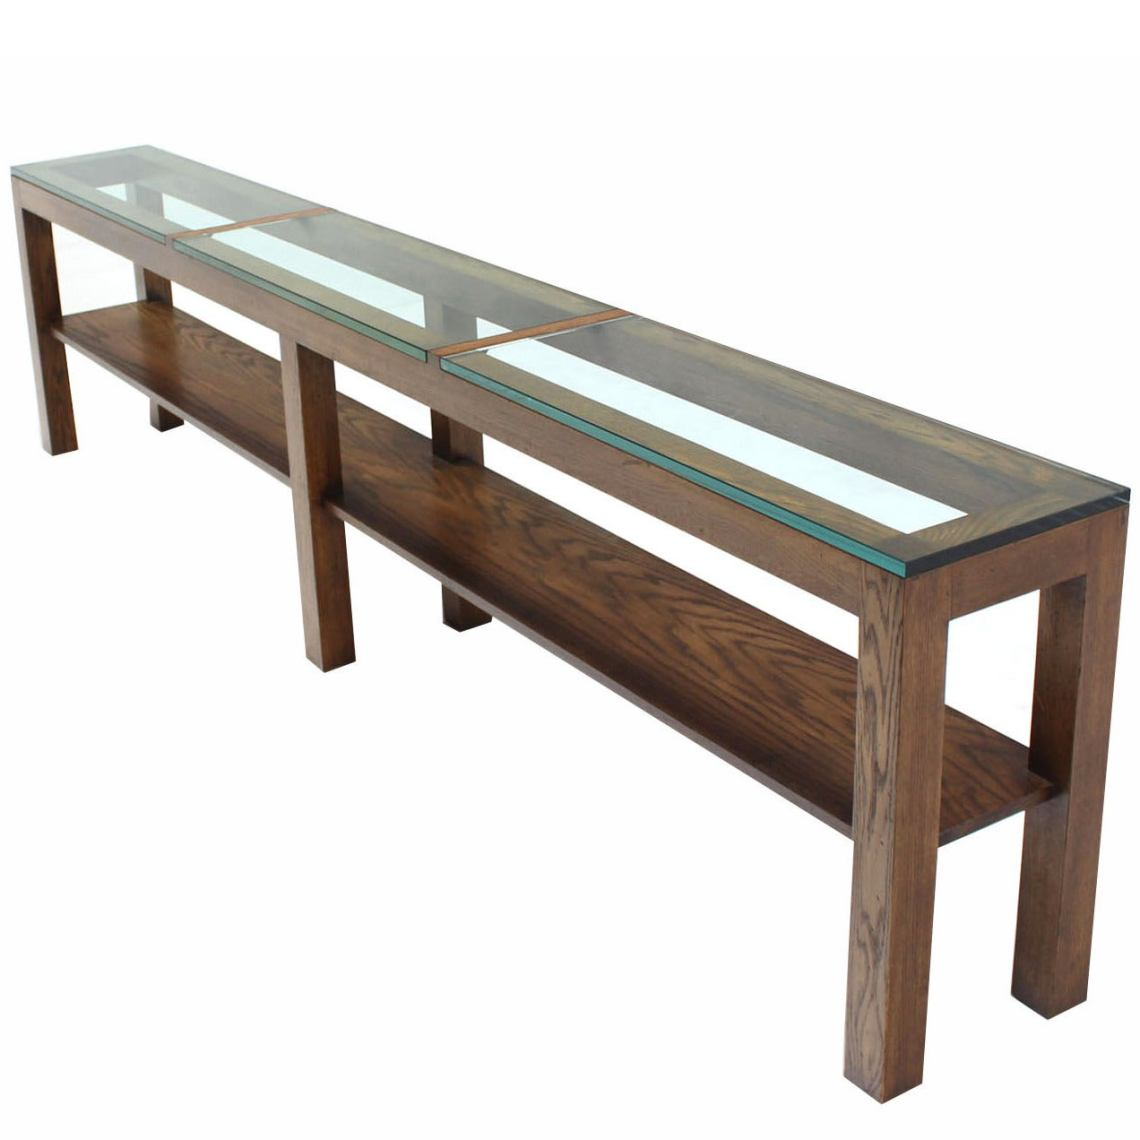 Image Result For Ft Console Table